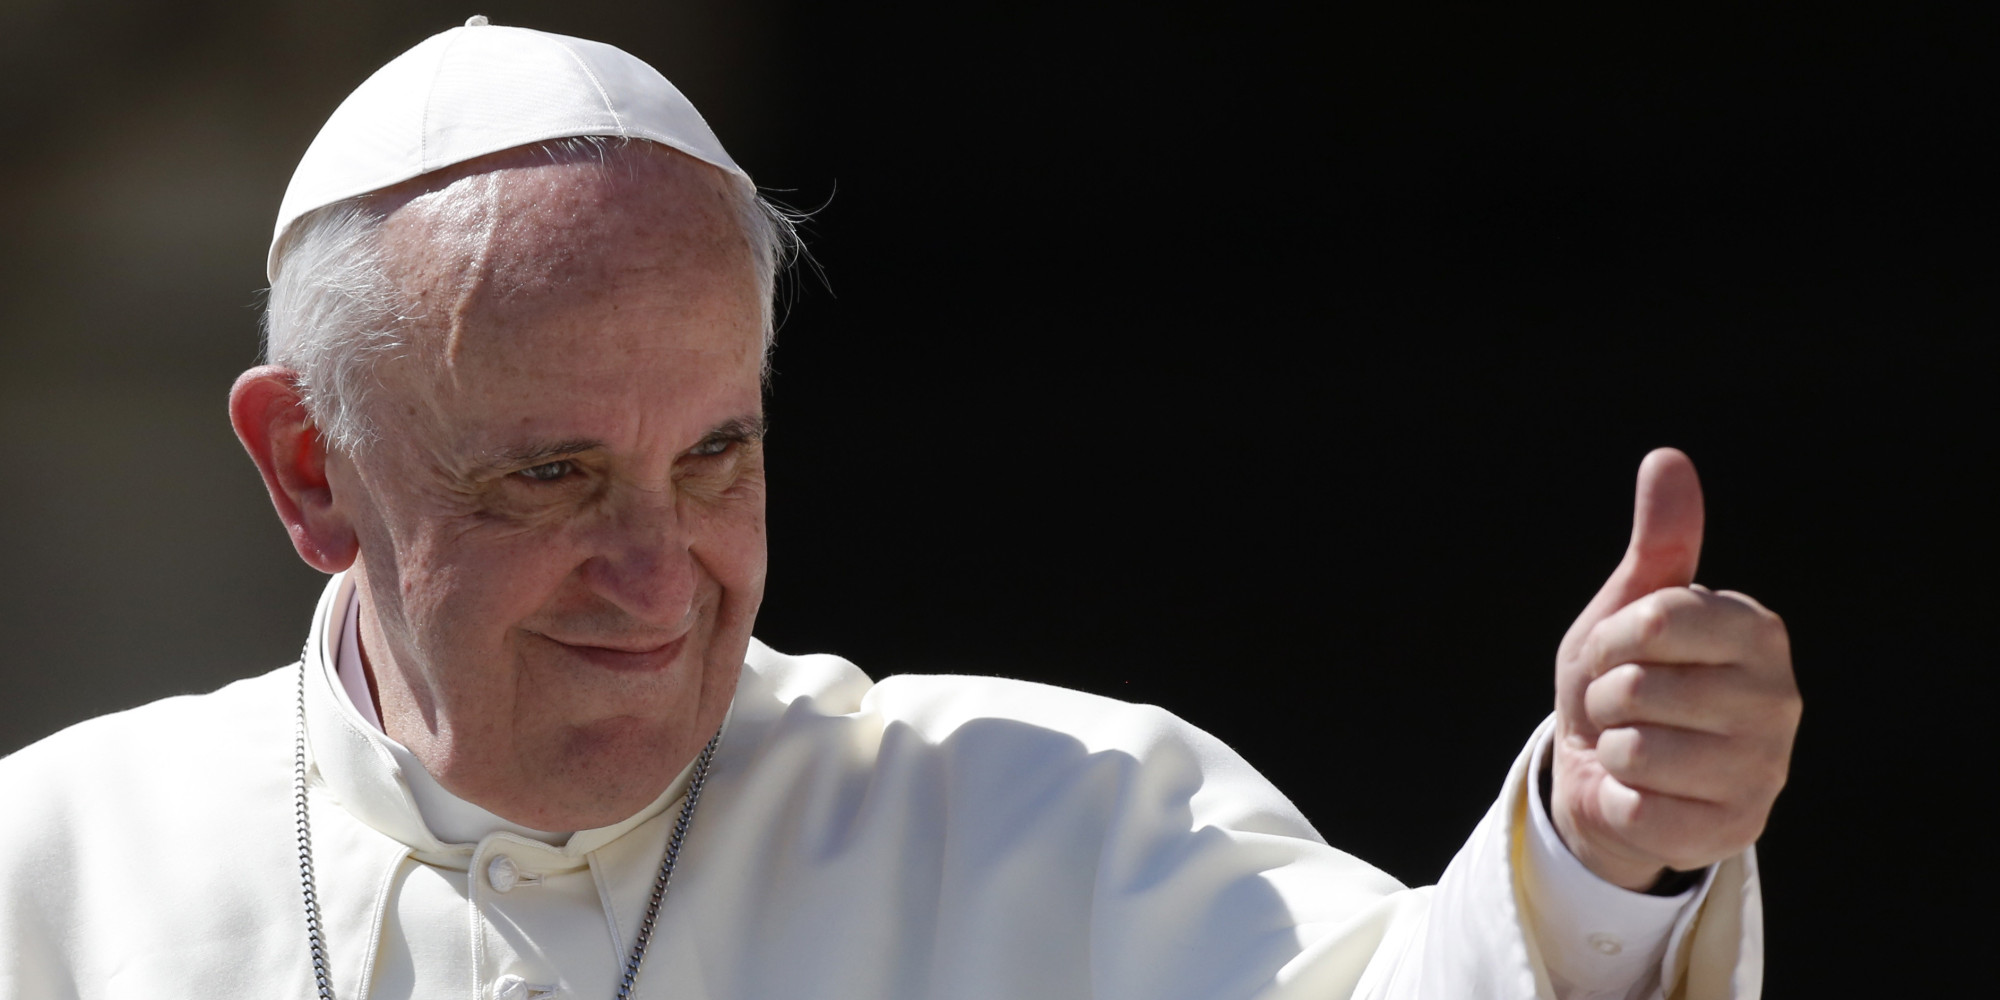 Fox News Calls Pope Francis 'Marxist,' 'Most Dangerous Person on the Planet' Over Climate Encyclical